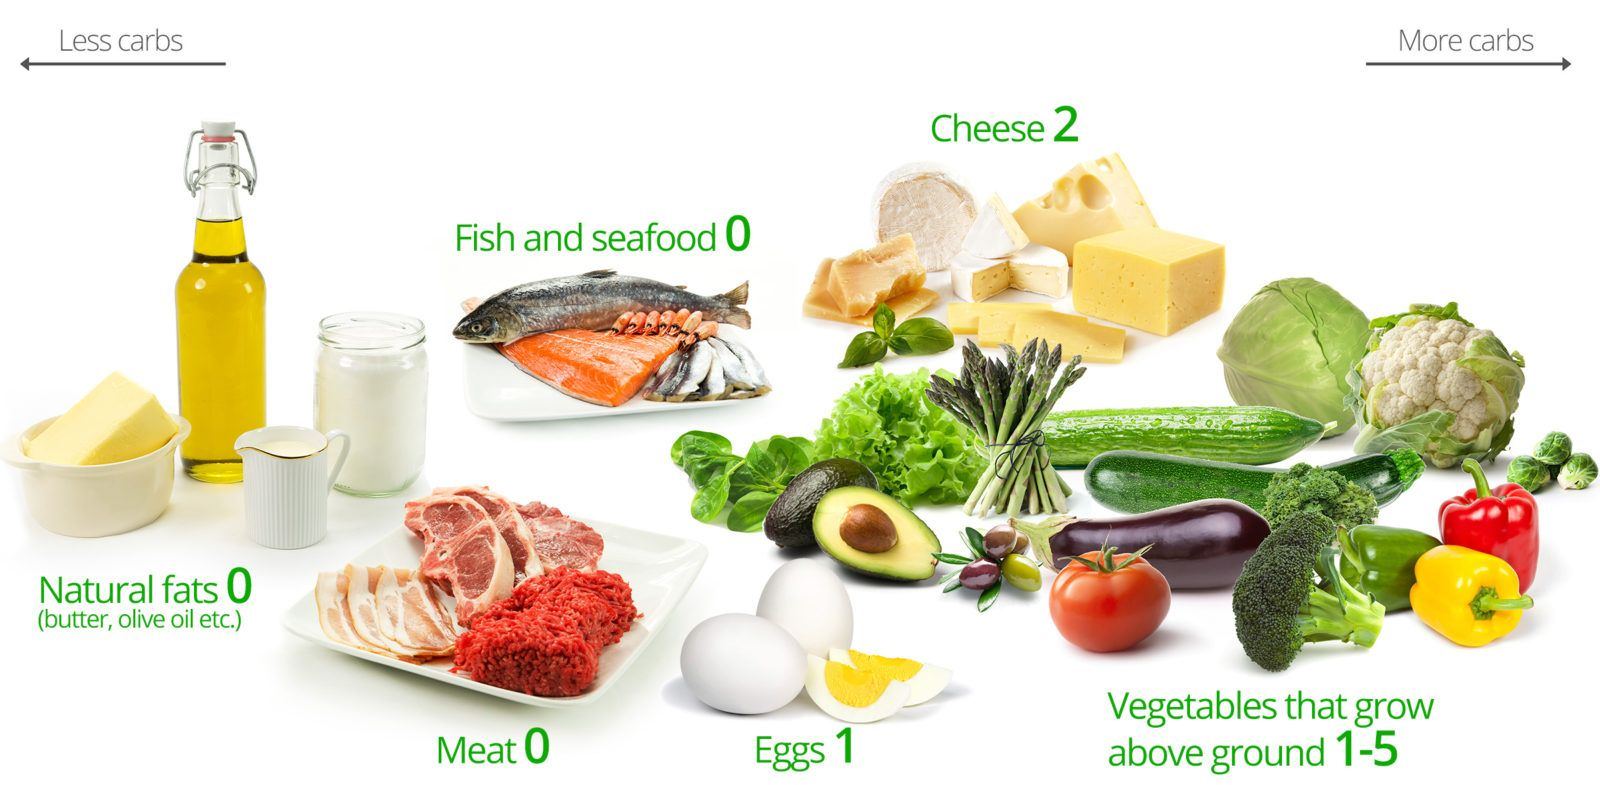 Low-carb diet foods: Natural fats (butter, olive oil); Meat; Fish ...